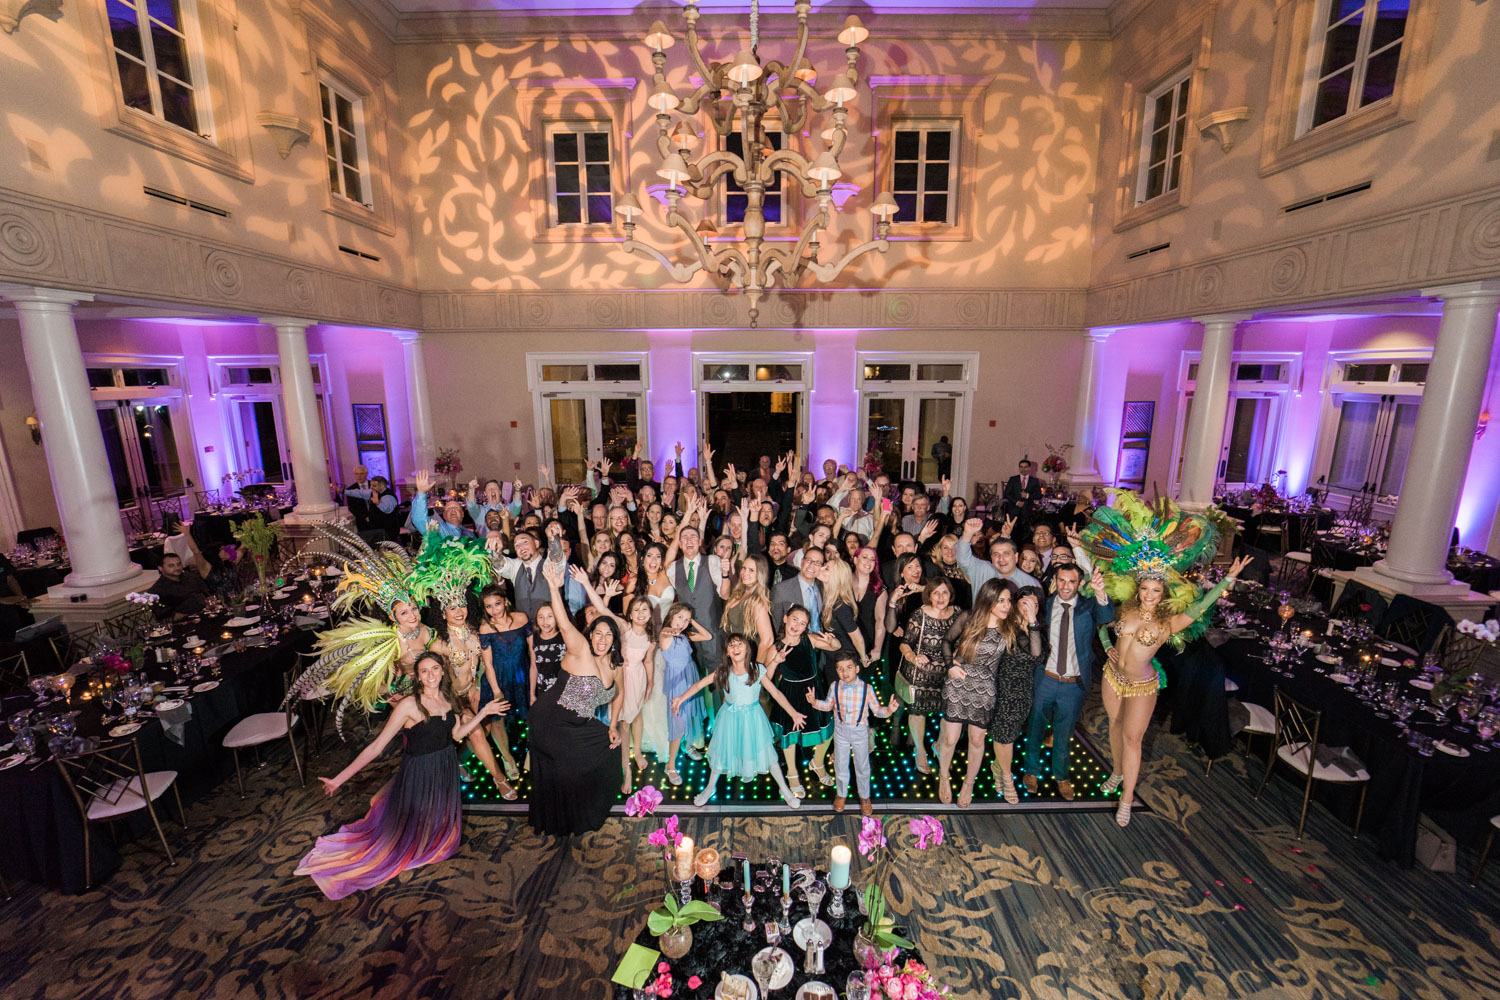 The Group Shot using #magmod #modifiers at one the most exclusive club - The Ruby hill in Pleasanton, CA.